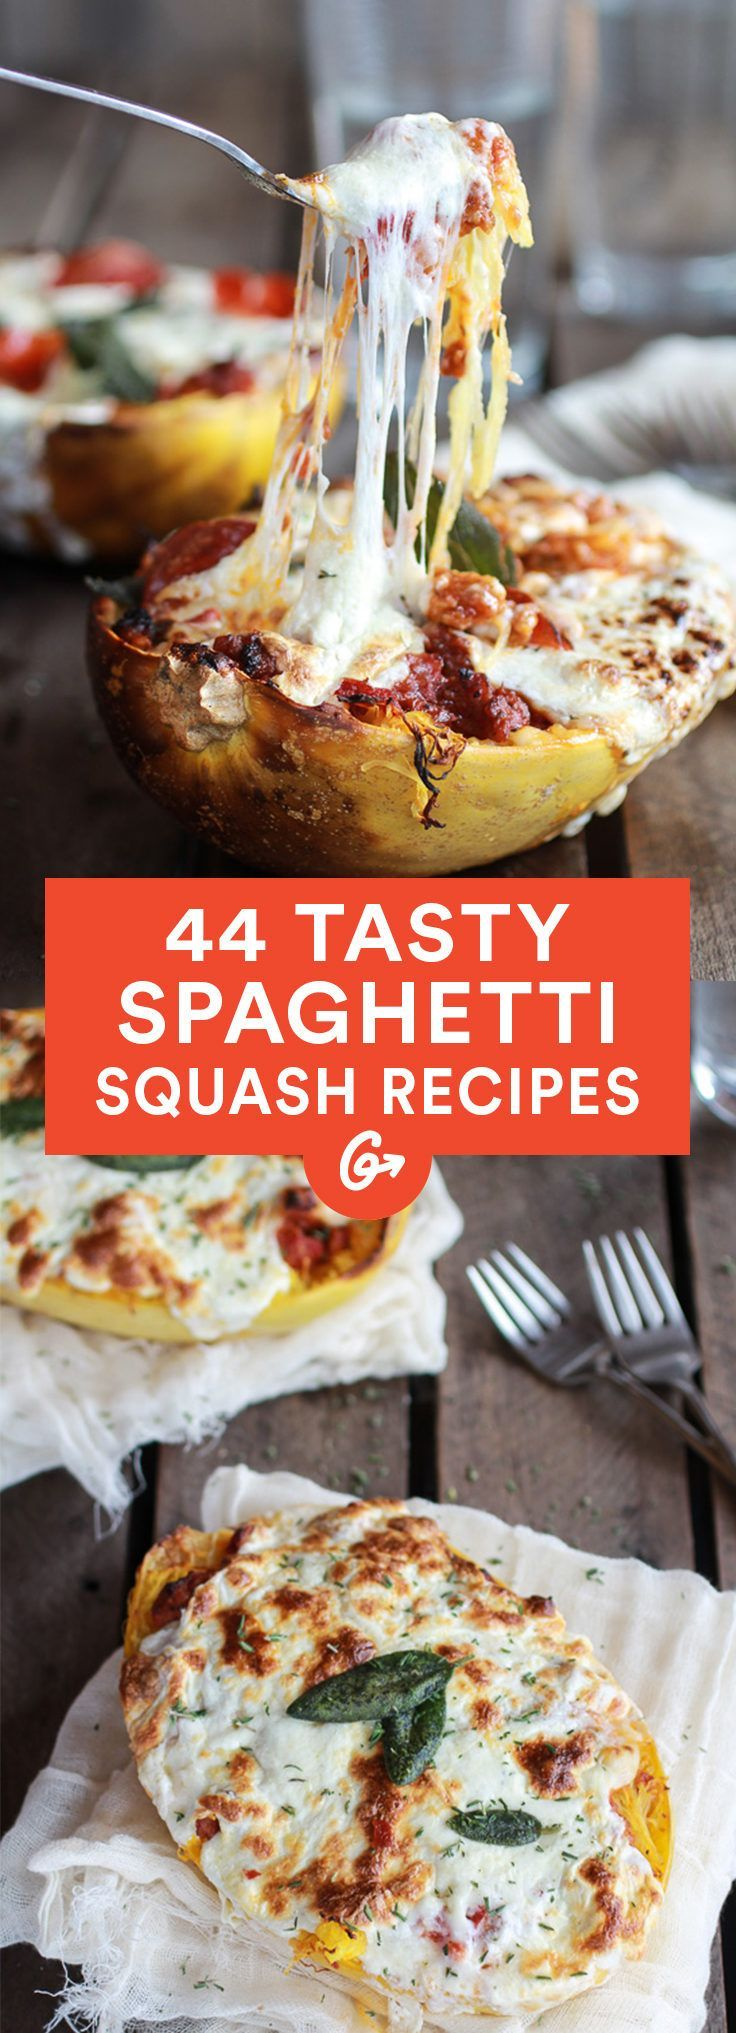 From lasagna boats to burrito bowls, we've got the recipes to satisfy your carb cravings.  #comfortfood #squash #spaghettisquash #vegetarian #vegetarianrecipes http://greatist.com/eat/spaghetti-squash-recipes